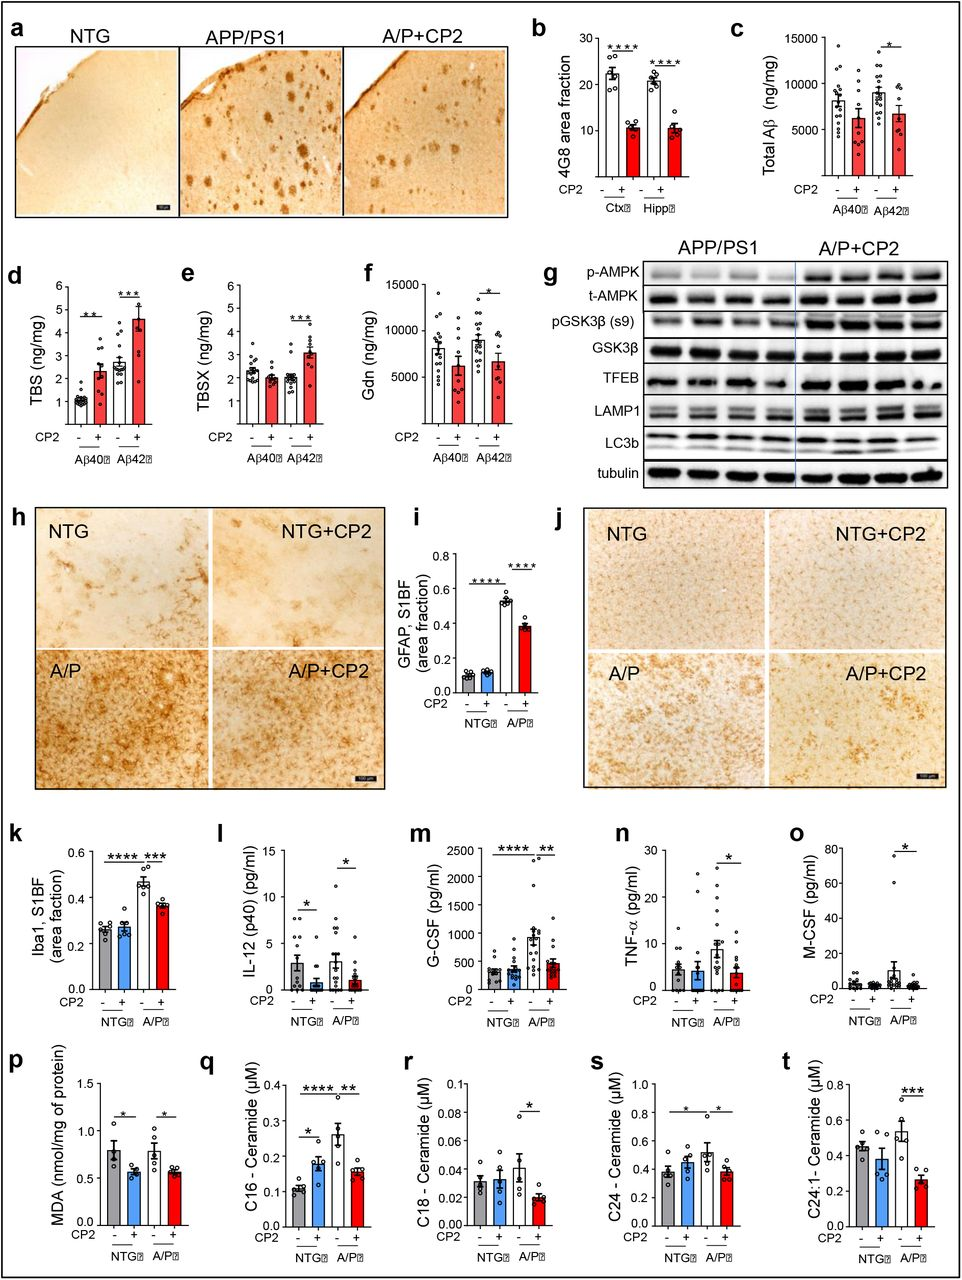 CP2 treatment reduces levels of Aβ, inflammation and oxidative stress in symptomatic APP/PS1 mice. a, Representative images of Aβ plaques visualized using 4G8 antibody in primary somatosensory barrel field ( S1BF ) cortex of NTG and APP/PS1 mice. Scale bar, 100 μm. b , Levels of Aβ plaques are significantly reduced in S1BF and hippocampus in CP2-treated APP/PS1 mice estimated using 4G8 antibody shown in ( a ). c-f , Differential centrifugation and ELISA revealed decreased levels of total Aβ42 in brain homogenates from CP2-treated APP/PS1 mice ( c ). Levels of soluble Aβ40 and 42 obtained using TBS ( d ) and TBSX ( e ) fractions were increased, while concentrations of the least soluble Aβ40 and 42 were decreased in brain fractions obtained using guanidine (Gdn) ( f ). n = 10 - 17 mice per group. g , CP2 treatment induces AMPK activation, reduces the activity of GSK3β, and activates autophagy in brain tissue of APP/PS1 mice ( n = 6 - 8 mice per group). h,j , Representative images of GFAP ( h ) and Iba1 ( j ) staining in the S1BF in vehicle and CP2-treated NTG and APP/PS1 mice. Scale bar, 100 μm. i,k , Quantification of GFAP ( i ) and Iba1 ( k ) staining from ( h ) and ( j ), respectively. l-o , CP2 reduces pro-inflammatory markers in plasma of NTG and APP/PS1 mice. n = 15 - 20 mice per group. p , Levels of lipid peroxidation measured using malondialdehyde (MDA) were significantly reduced in brain tissue of CP2-treated NTG and APP/PS1 mice. n = 4 - 6 mice per group. q-t , Concentrations of ceramides (C16, C18, C24, C24-1) were significantly reduced in blood collected from CP2-treated APP/PS1 mice and measured using targeted metabolomics. n = 5 mice per group. All mice were 23-month-old. Data are presented as mean ± S.E.M. A two-way ANOVA with Fisher`s LSD post-hoc test was used for data analysis. For the comparison between vehicle and CP2-treated APP/PS1 groups ( Fig. 2 b-f ), an unpaired Student t -test was used for statistical analysis. *P